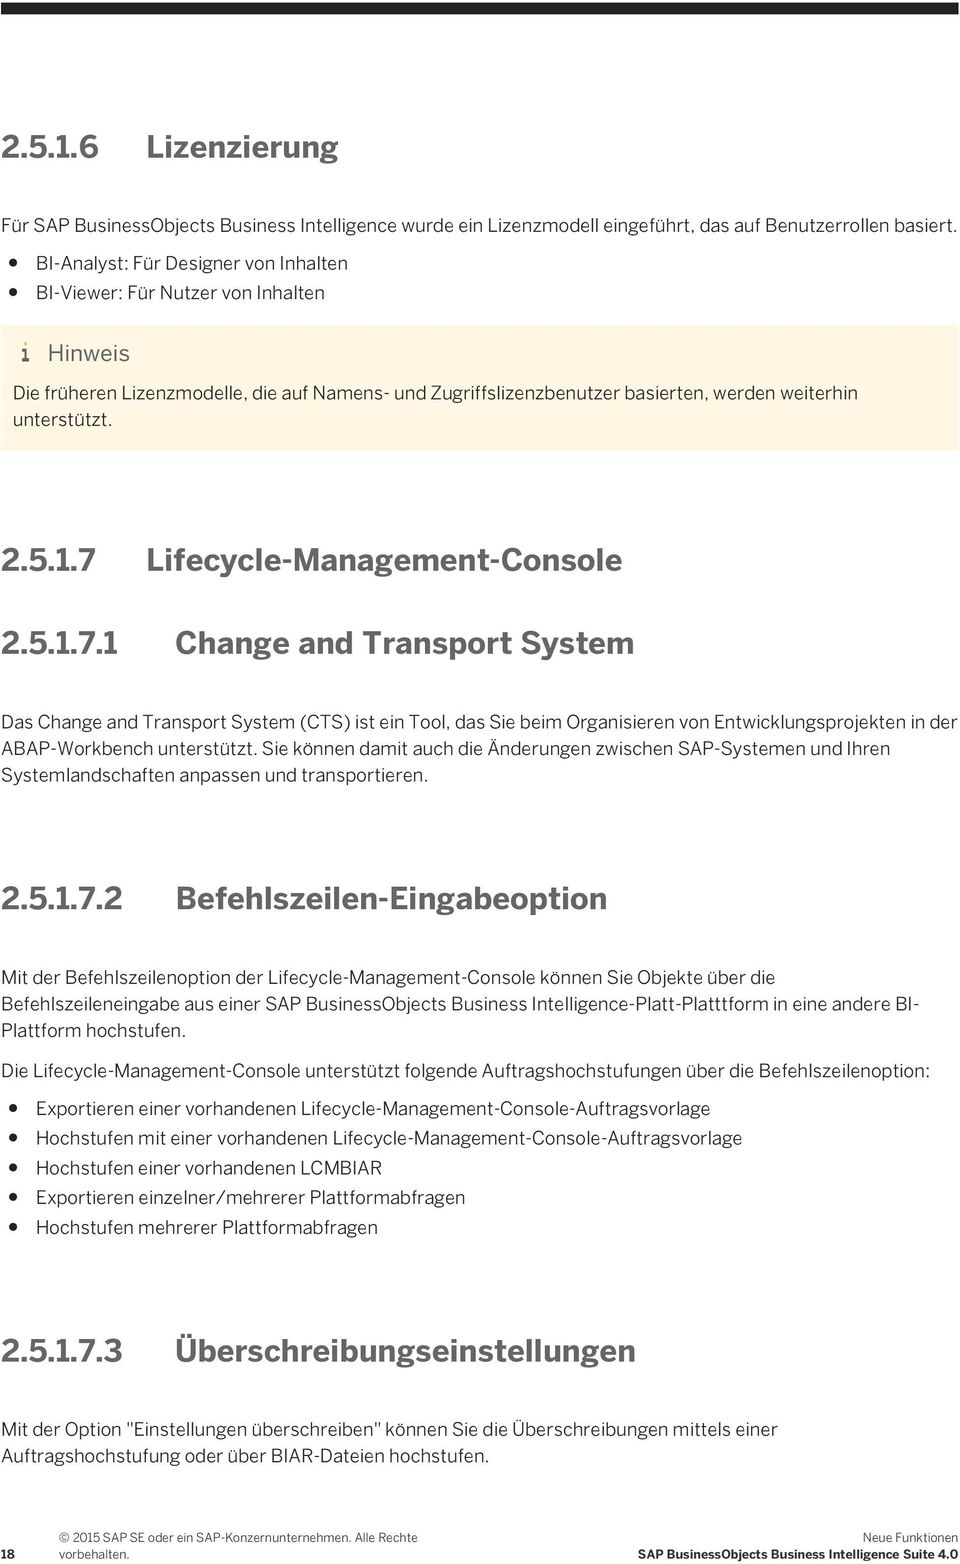 7 Lifecycle-Management-Console 2.5.1.7.1 Change and Transport System Das Change and Transport System (CTS) ist ein Tool, das Sie beim Organisieren von Entwicklungsprojekten in der ABAP-Workbench unterstützt.